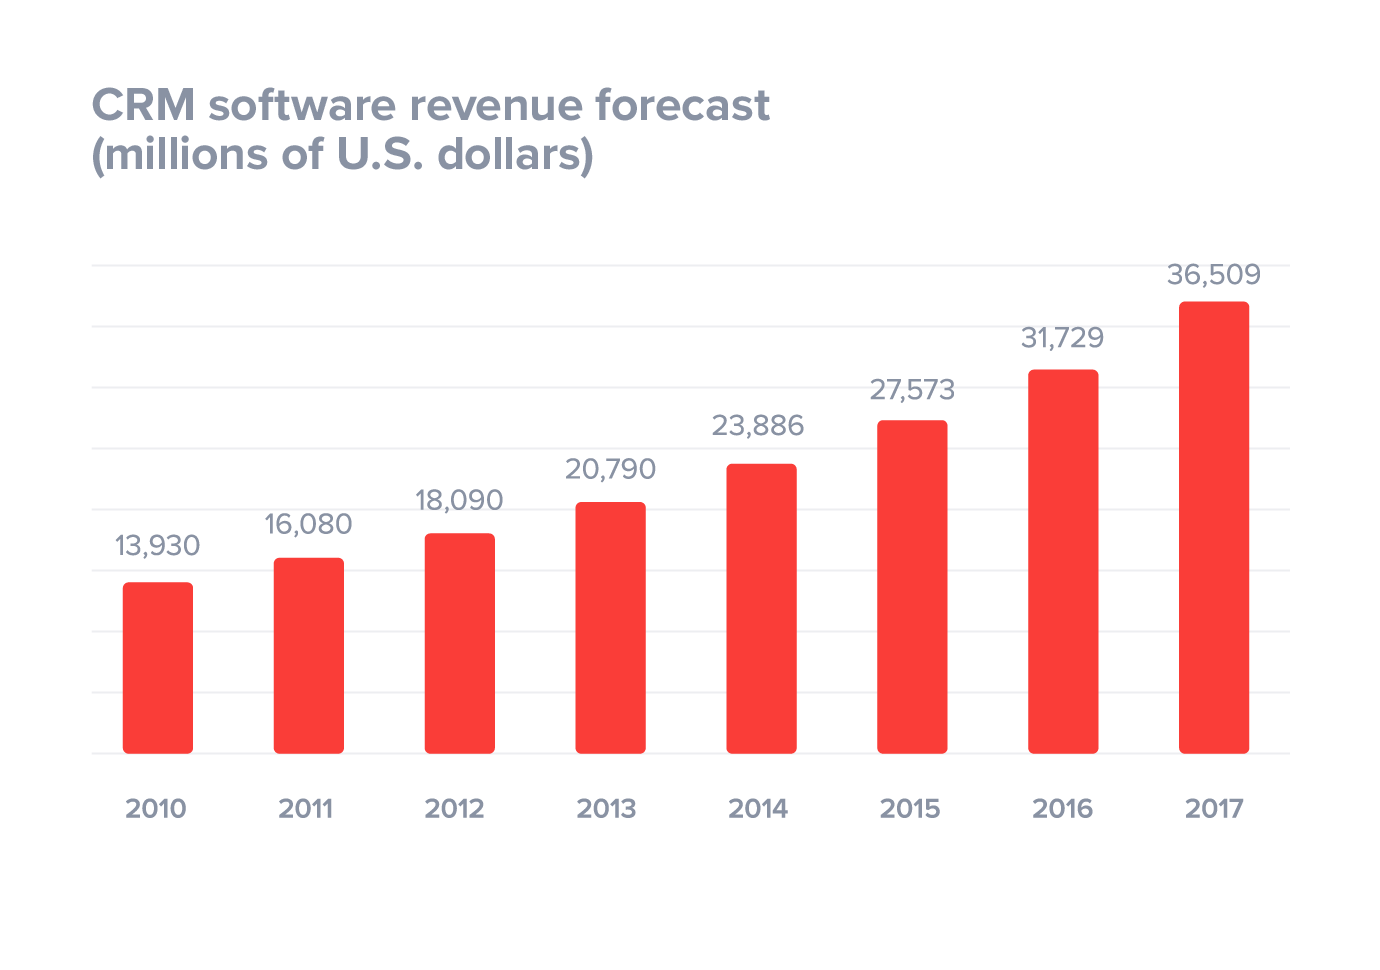 CRM software revenue forecast (millions of U.S. dollars)